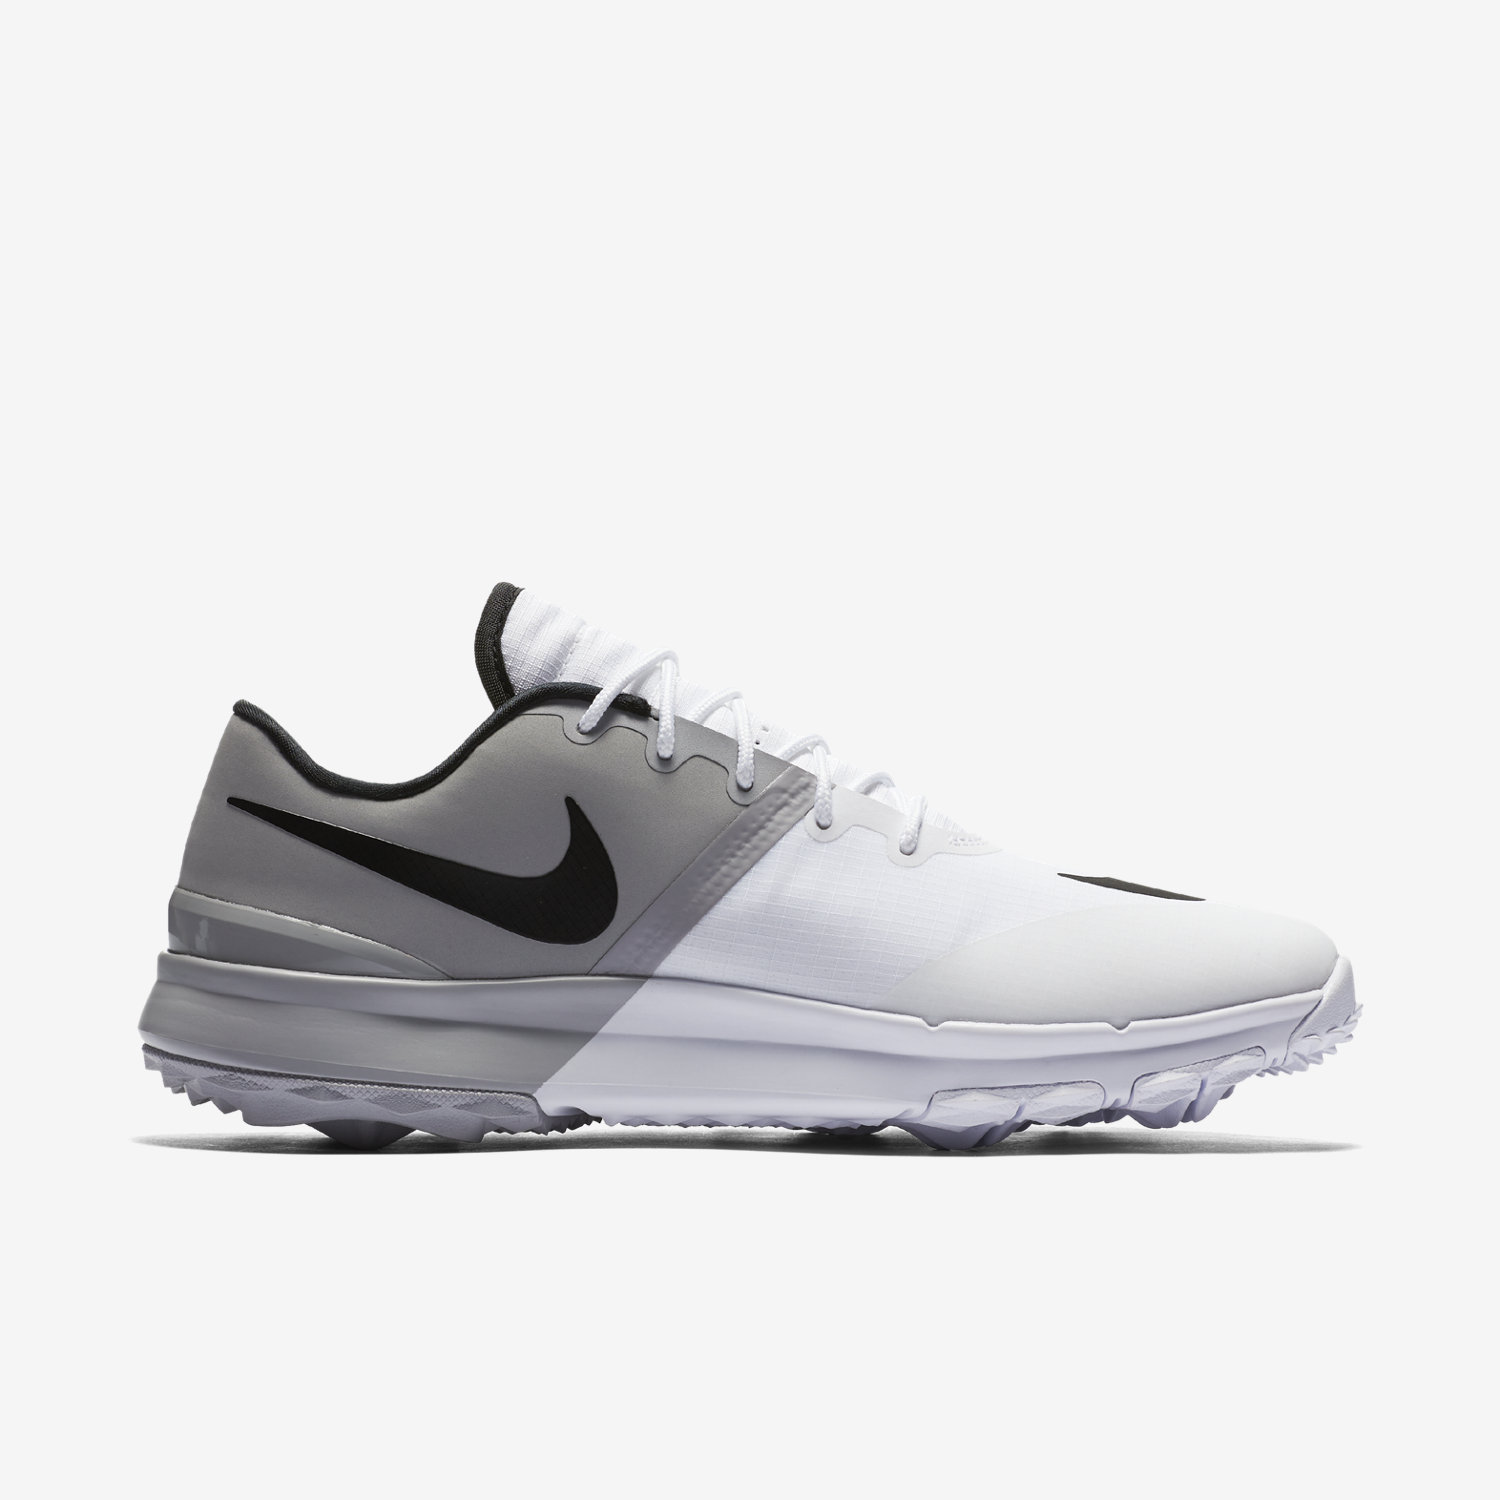 Ladies Nike Running Shoes Reviews